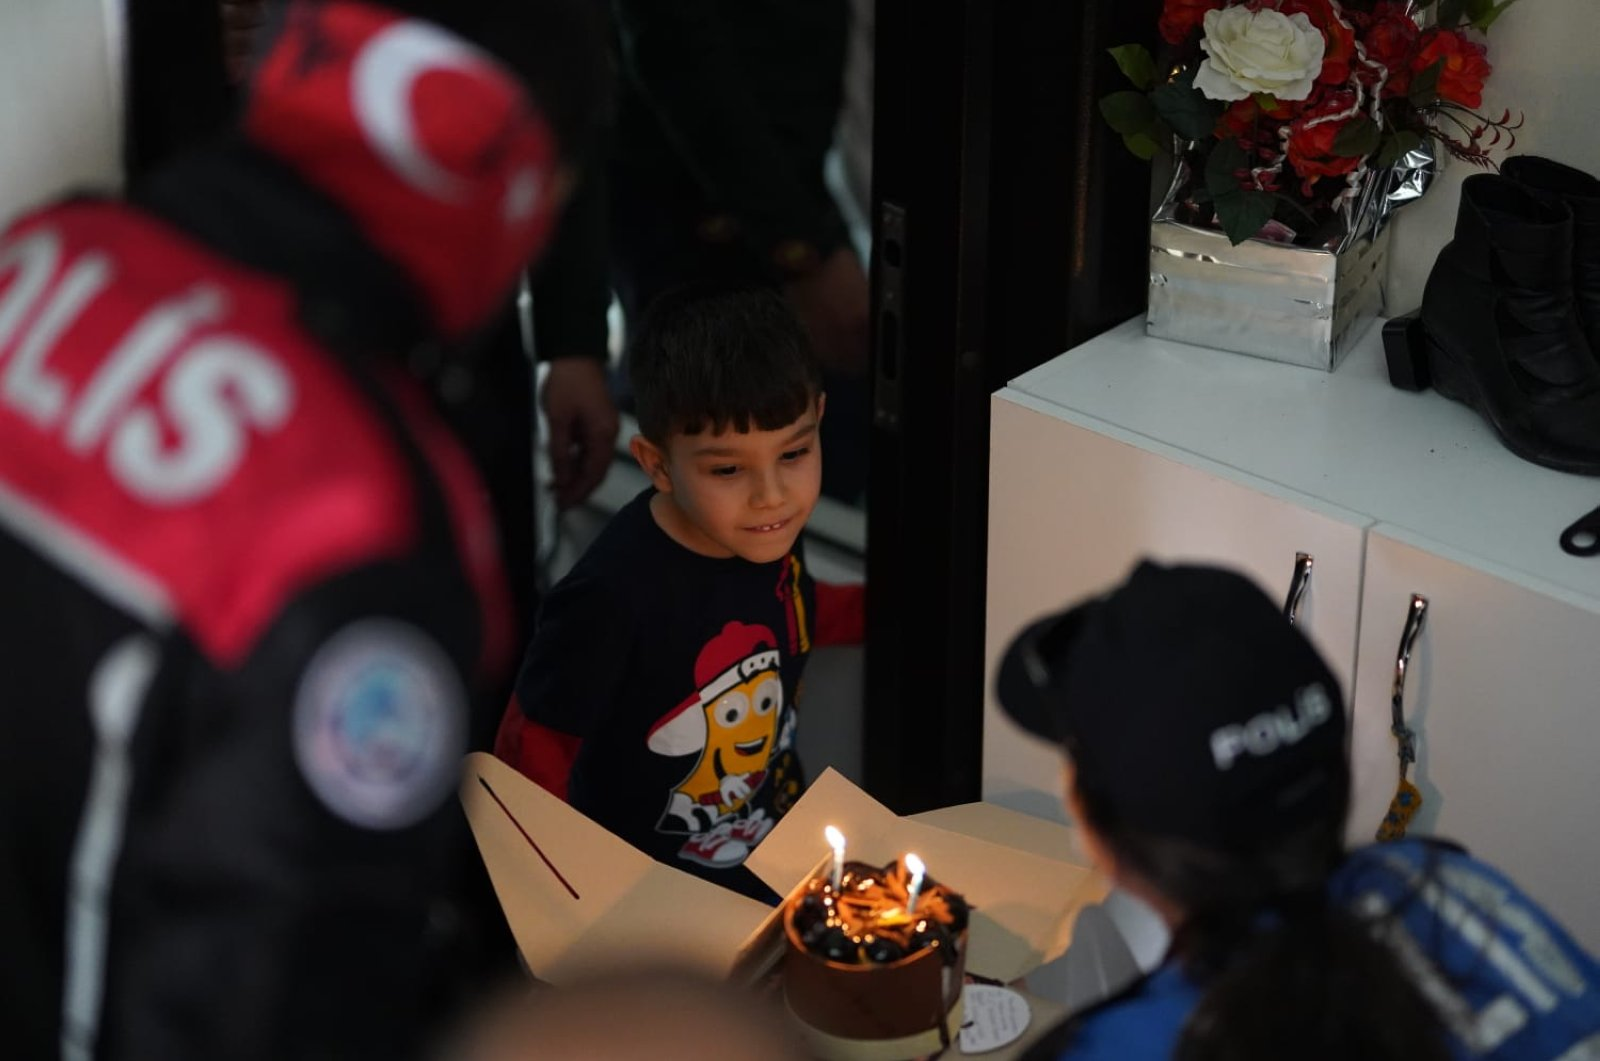 Police officers surprise 5-year-old Enes Kaan's birthday cake, Hatay, Turkey, April 20, 2020. (AA Photo)